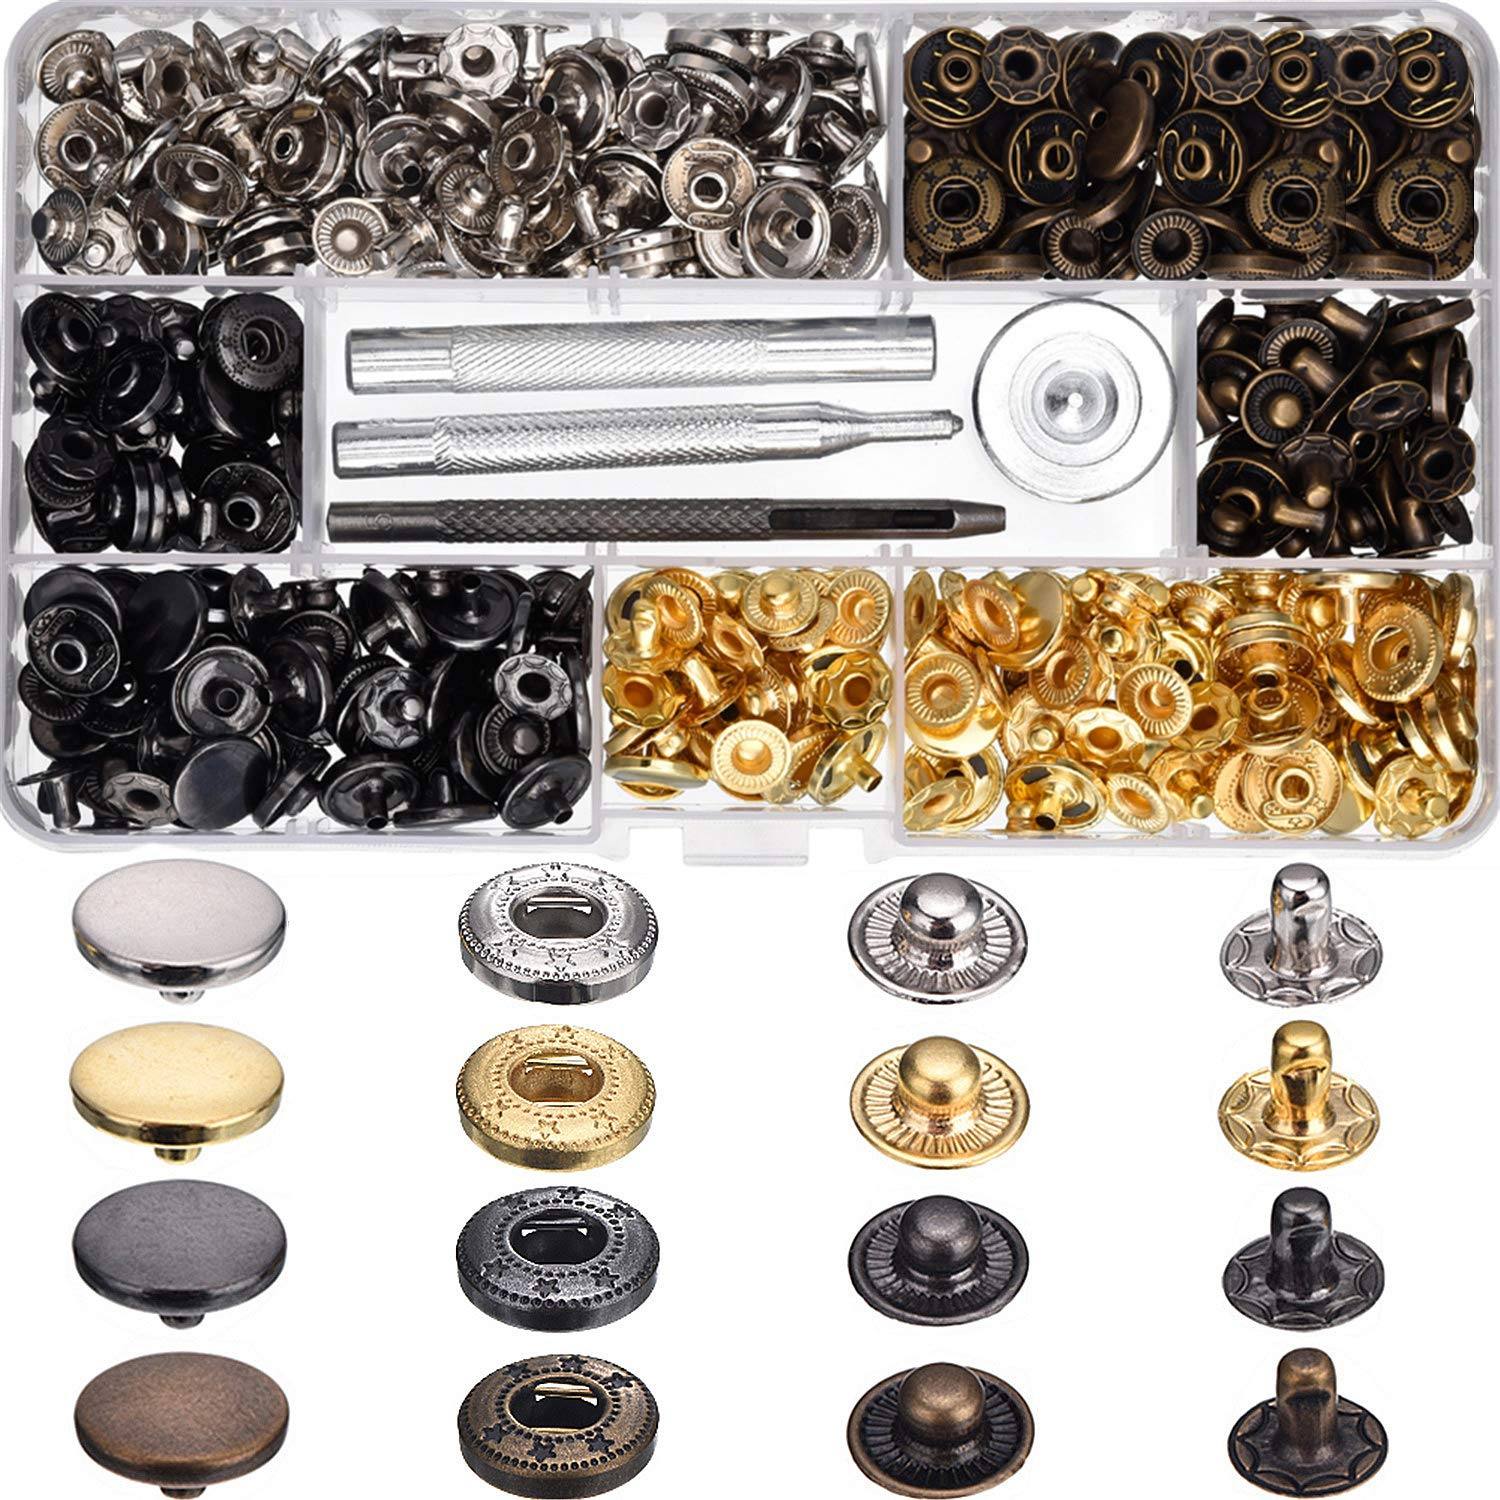 100 Set Snap Fasteners Leather Snaps Button Kit Press Studs with 4 Pieces Fixing Tools, 12.5 mm in Diameter Hotop 4337005996